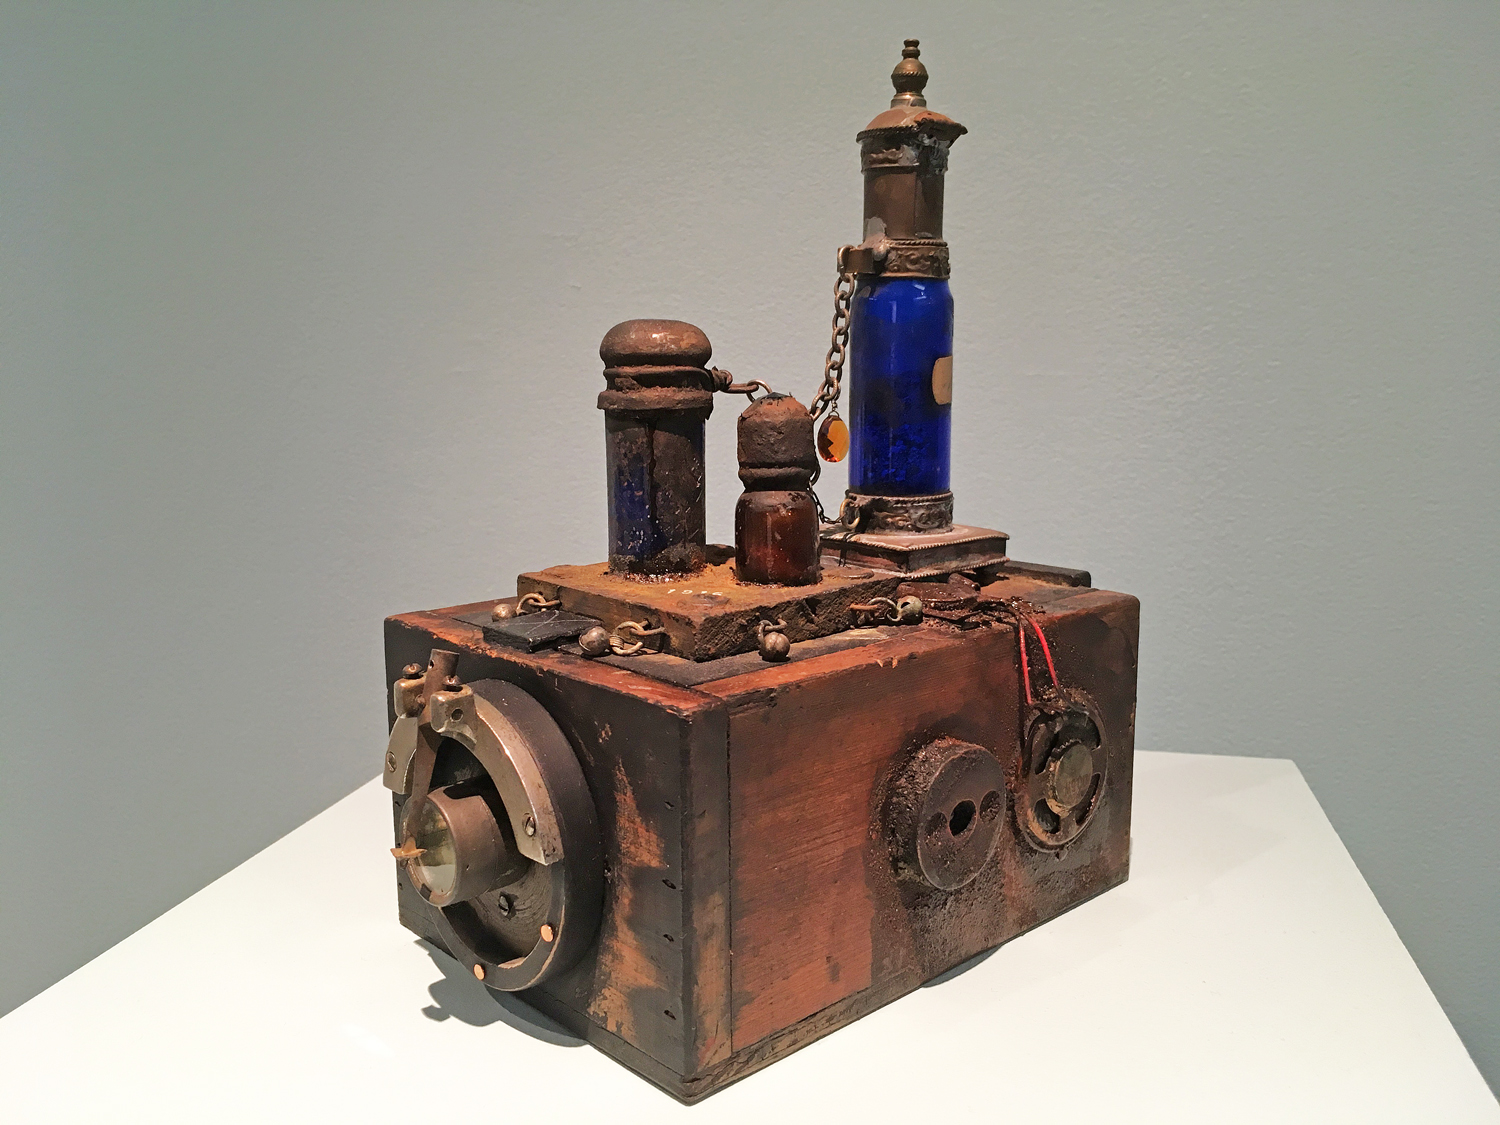 The Pattern of Patience 2018 Mixed media assemblage with bottle containing organic materials. 8 3/4 x 8 3/4 x 5 in. 2021 Marc Straus Gallery